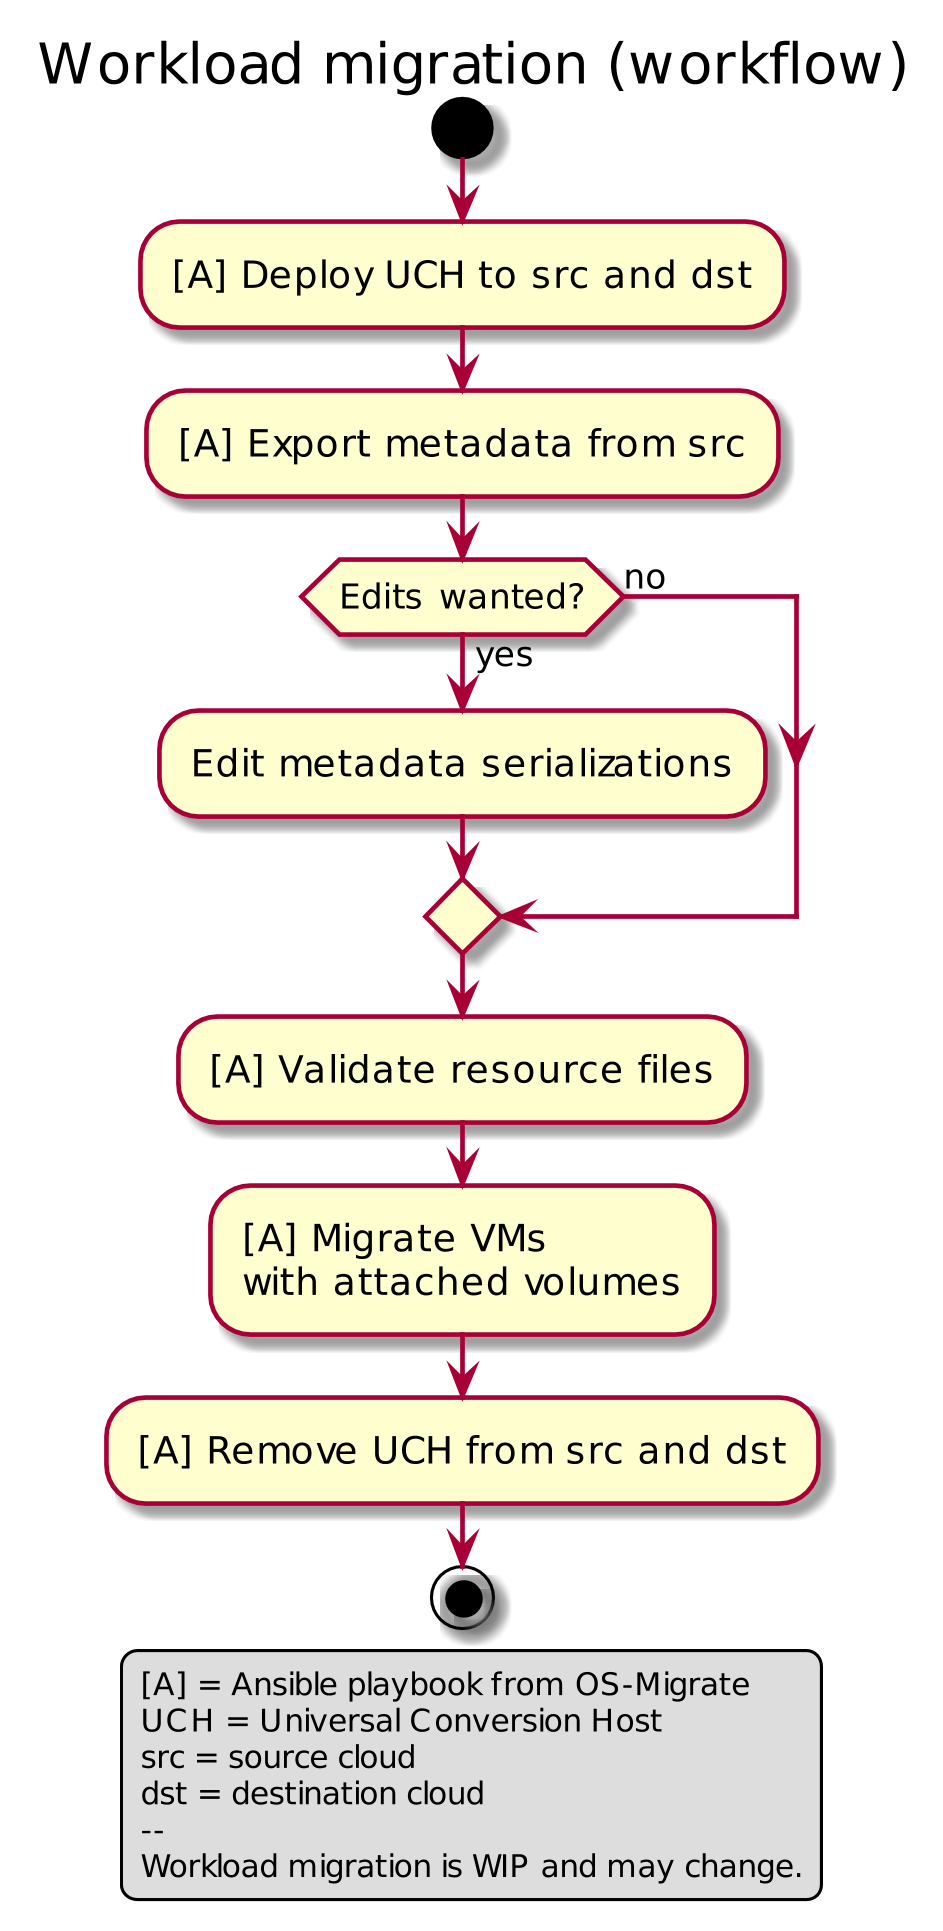 Workload migration (workflow)